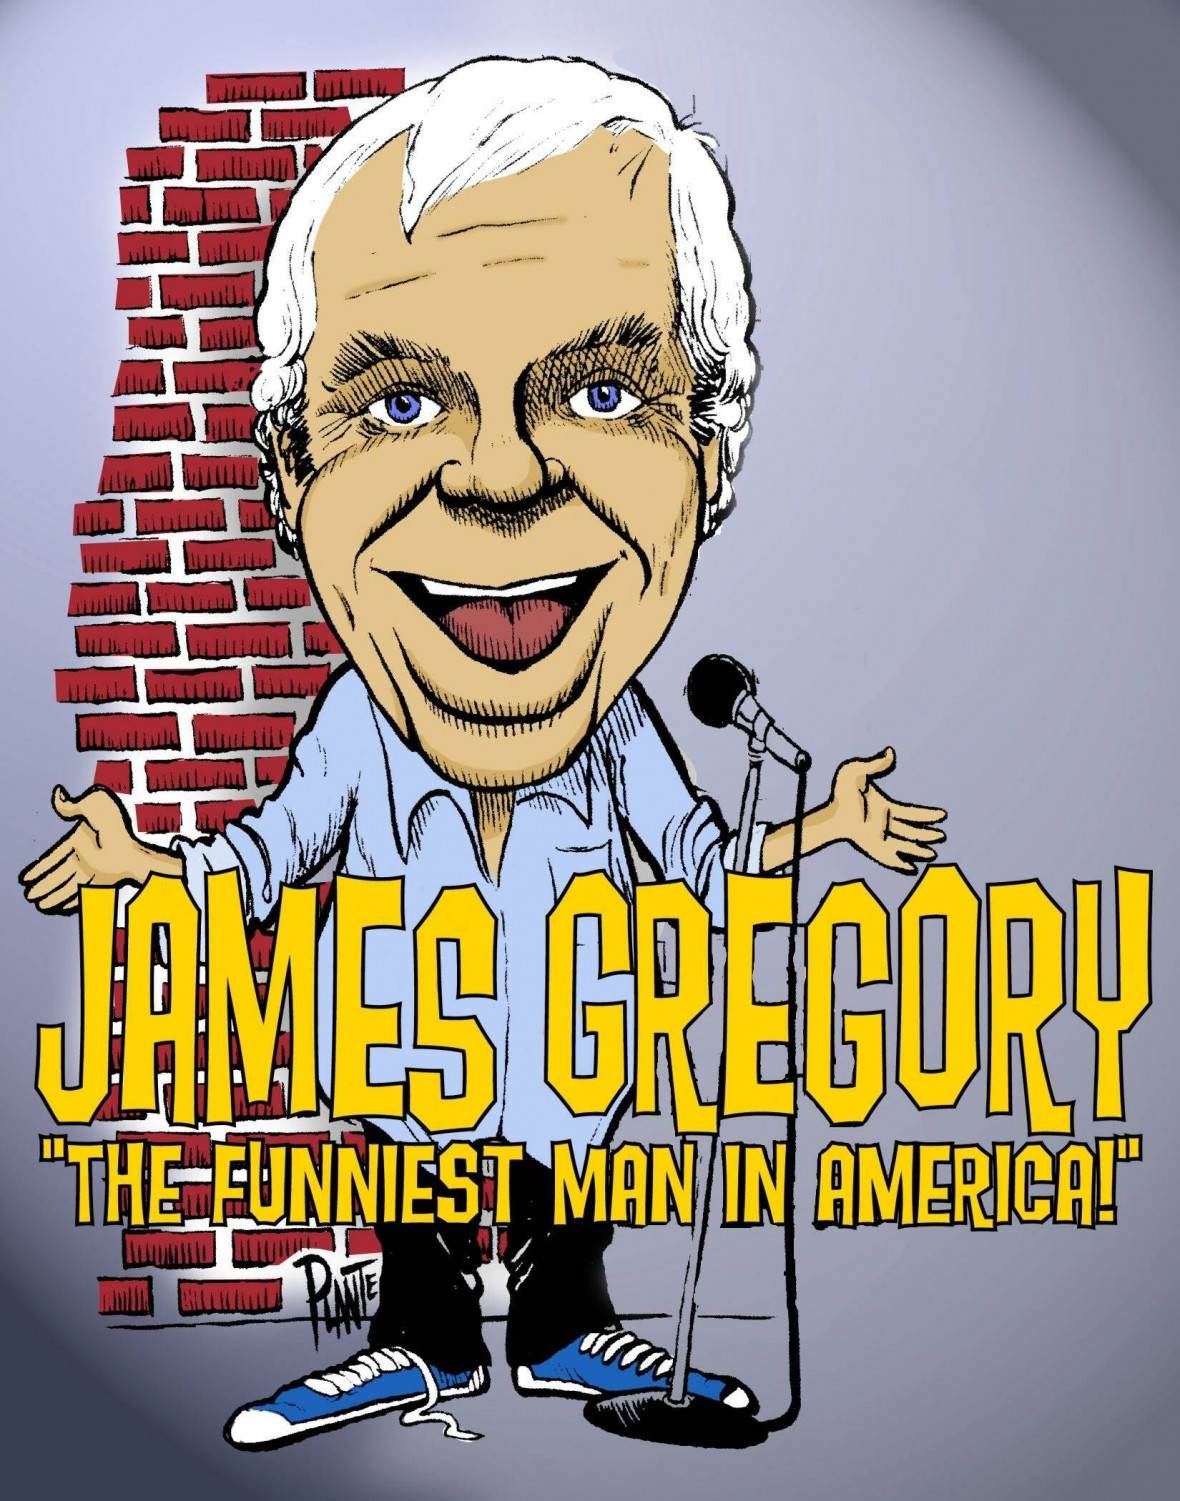 James Gregory The Funniest Man in America